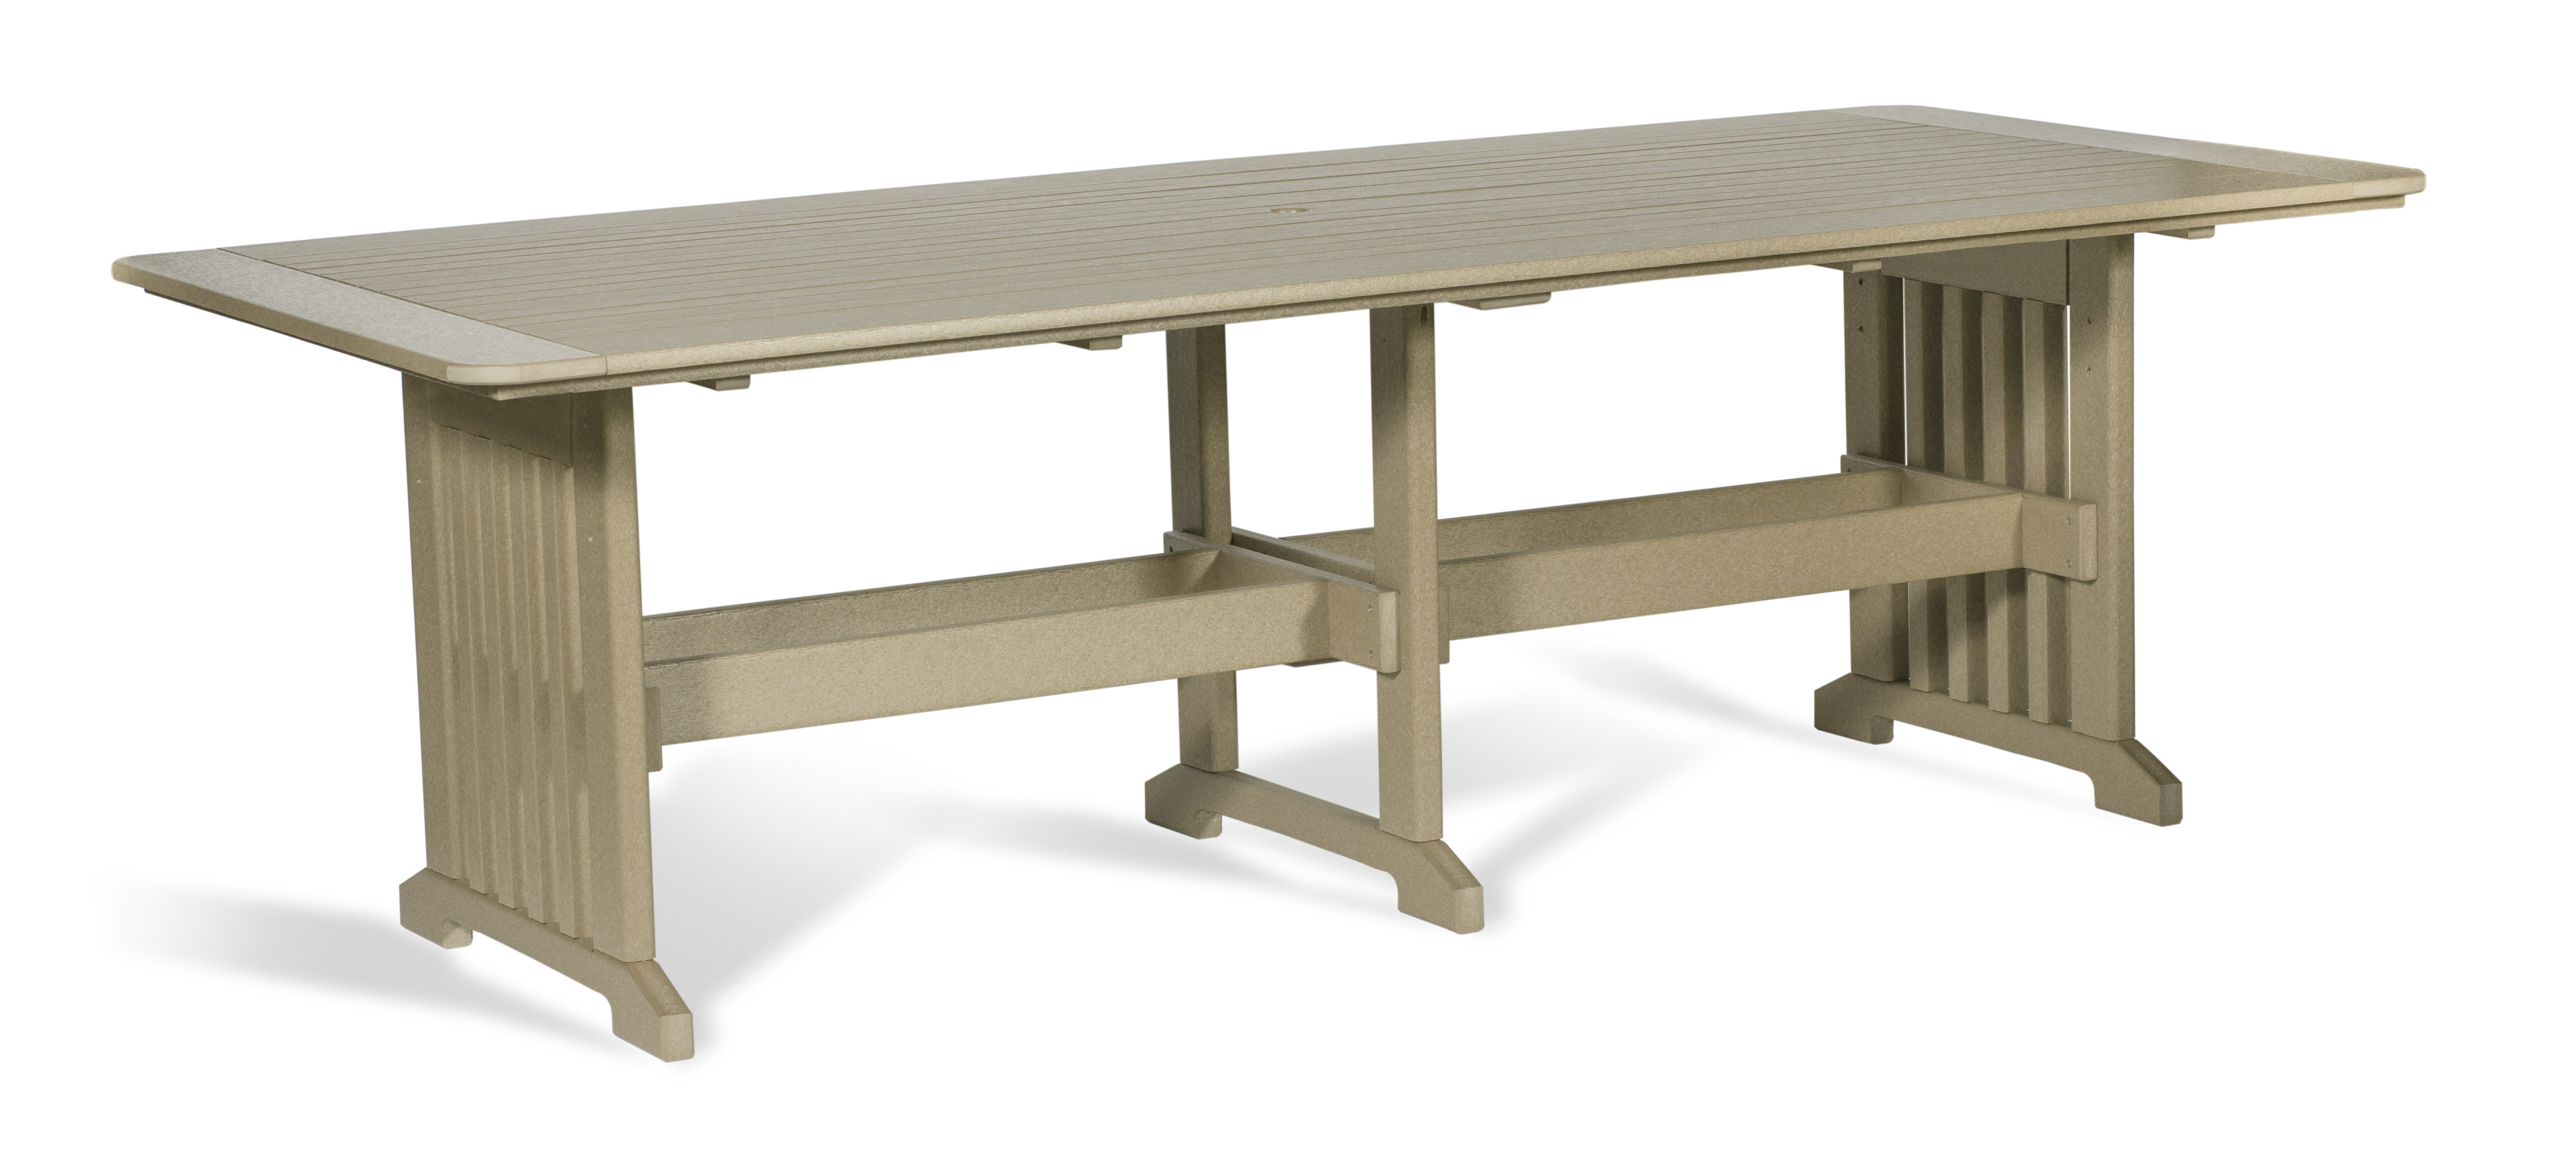 "Poly 43"" x 96"" Dinning Table - Weatherwood"